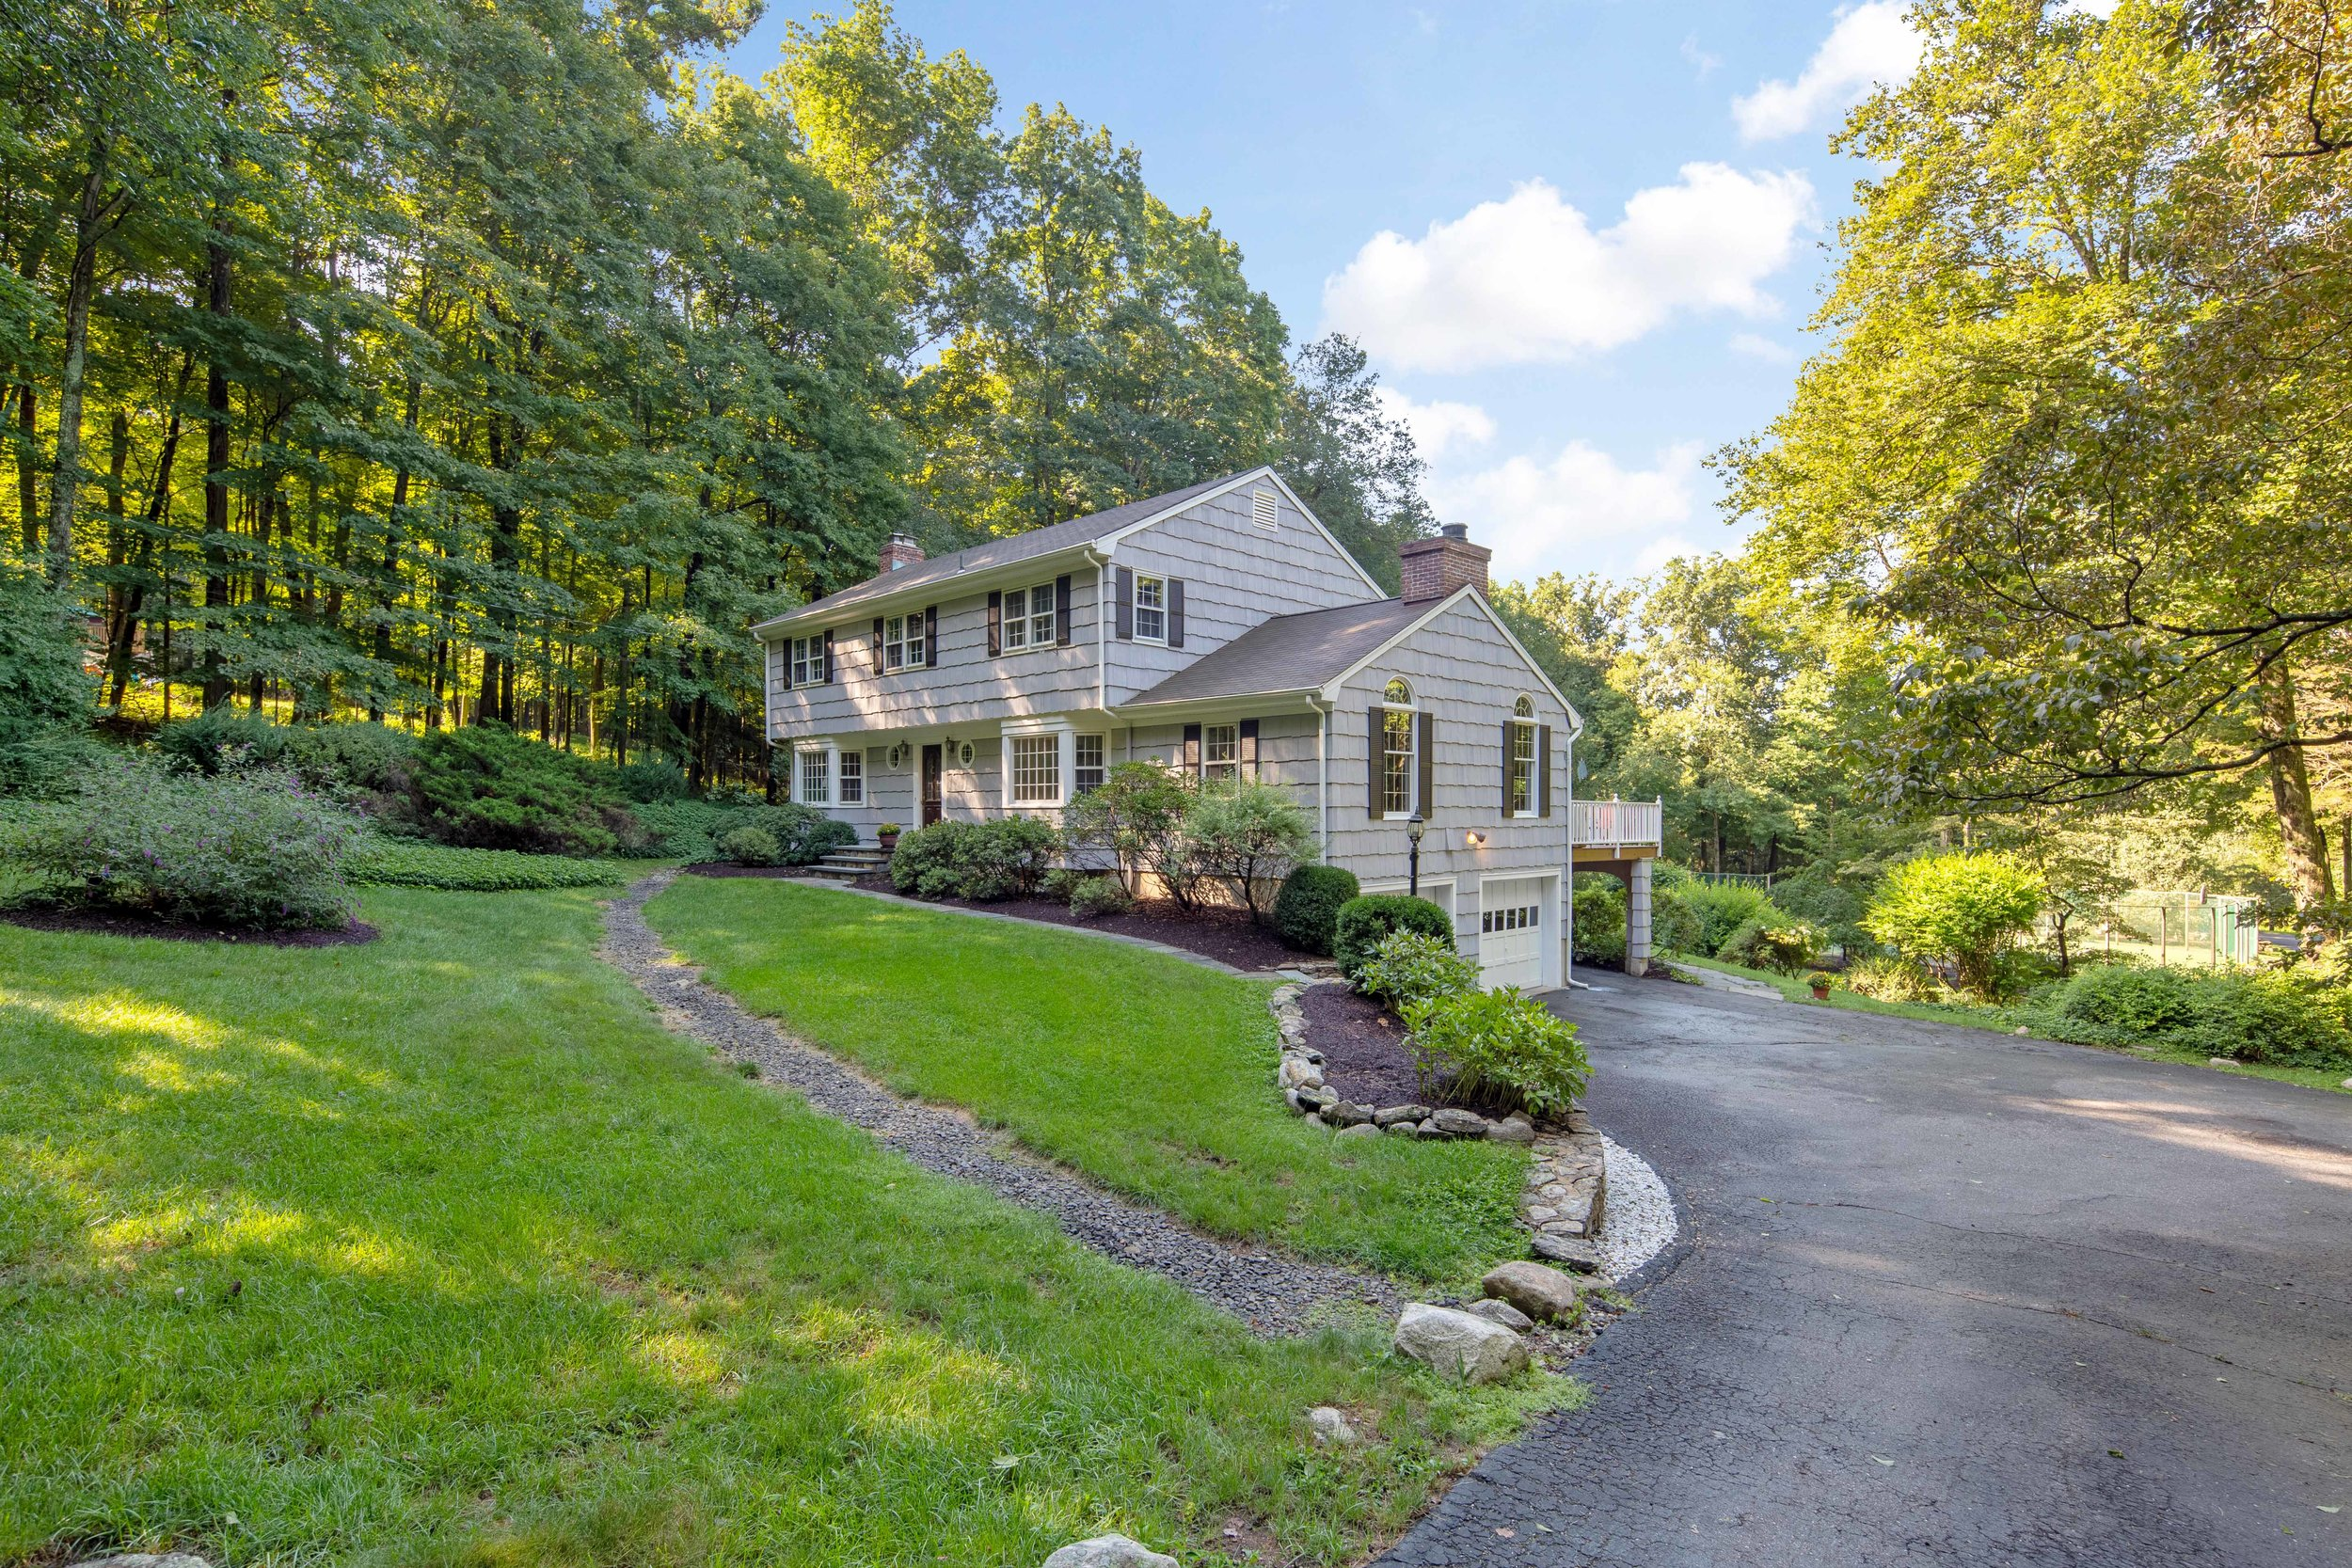 Front of House_24 Pheasant Hill Rd, Weston, CT 06883-1.jpg